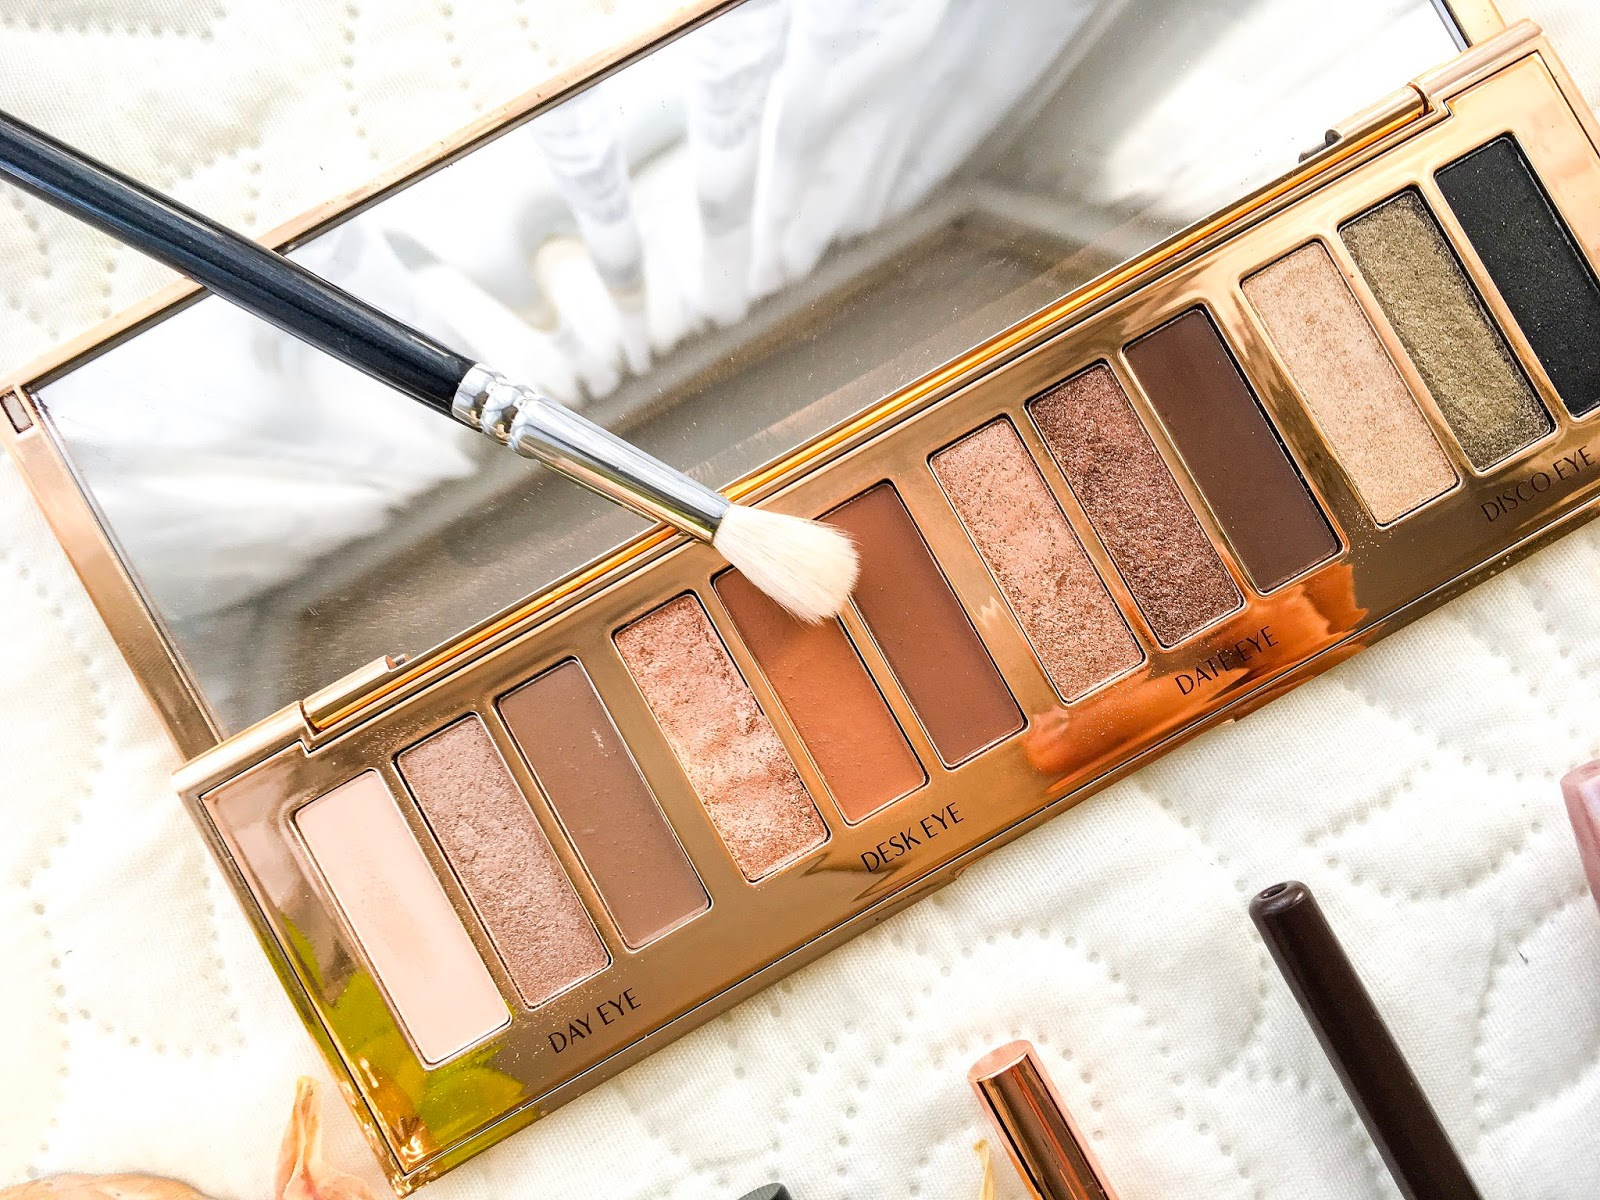 charlotte tilbury instant eye palette, zoeva eye brush